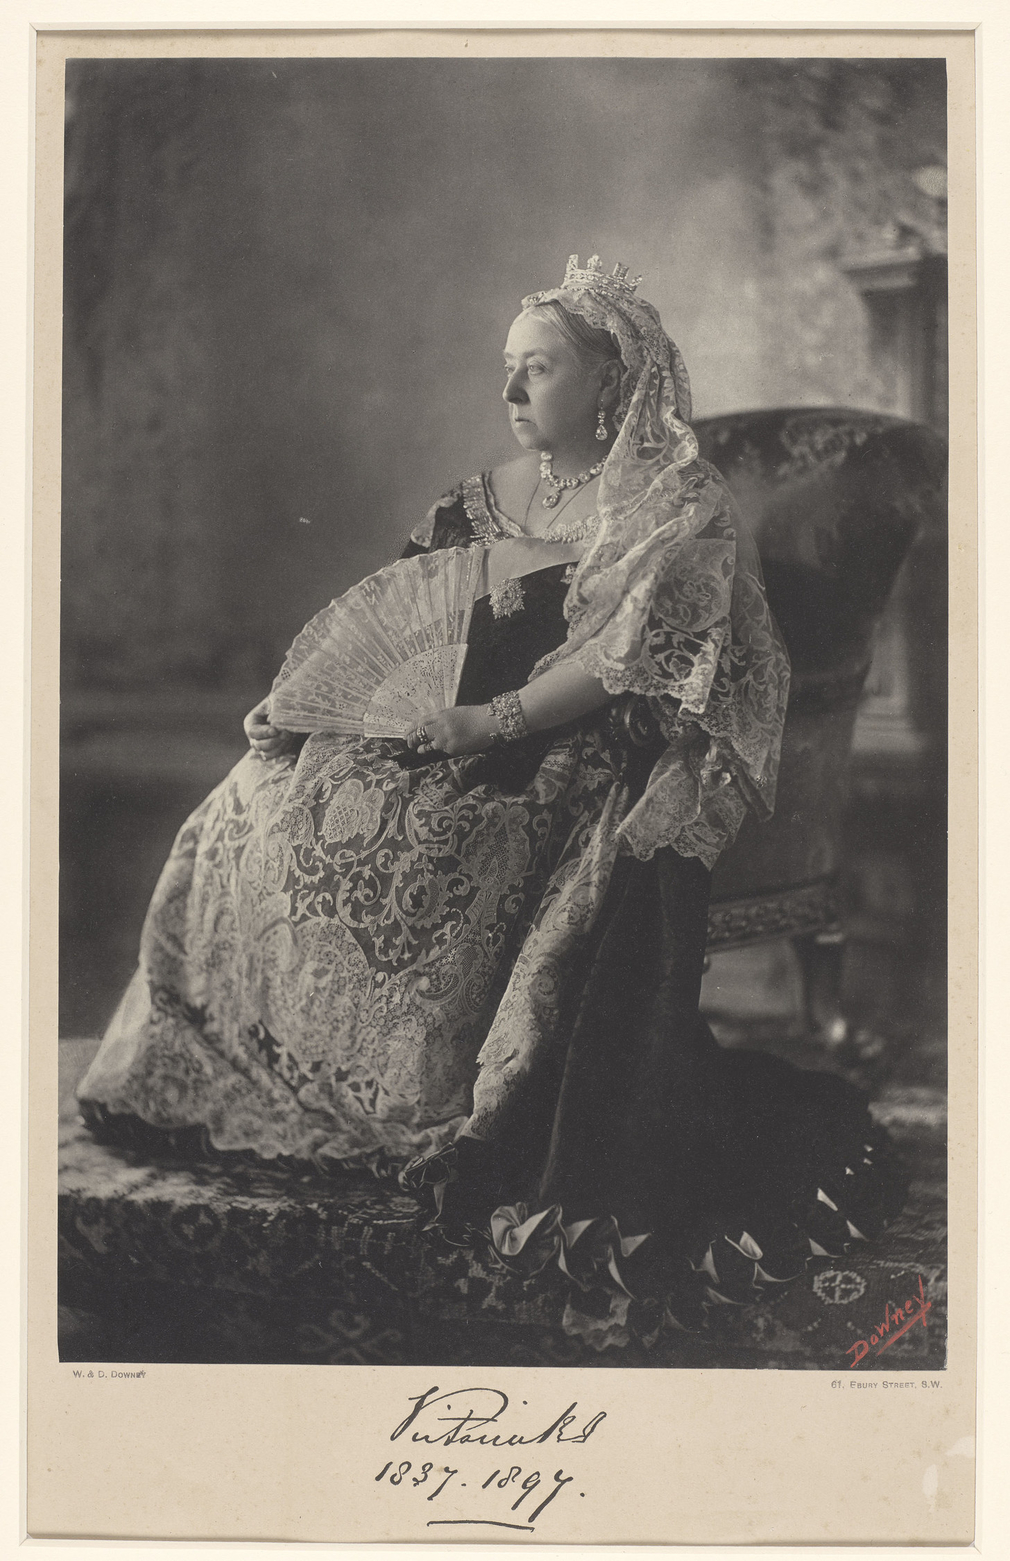 Queen Victoria on the occasion of her Diamond Jubilee